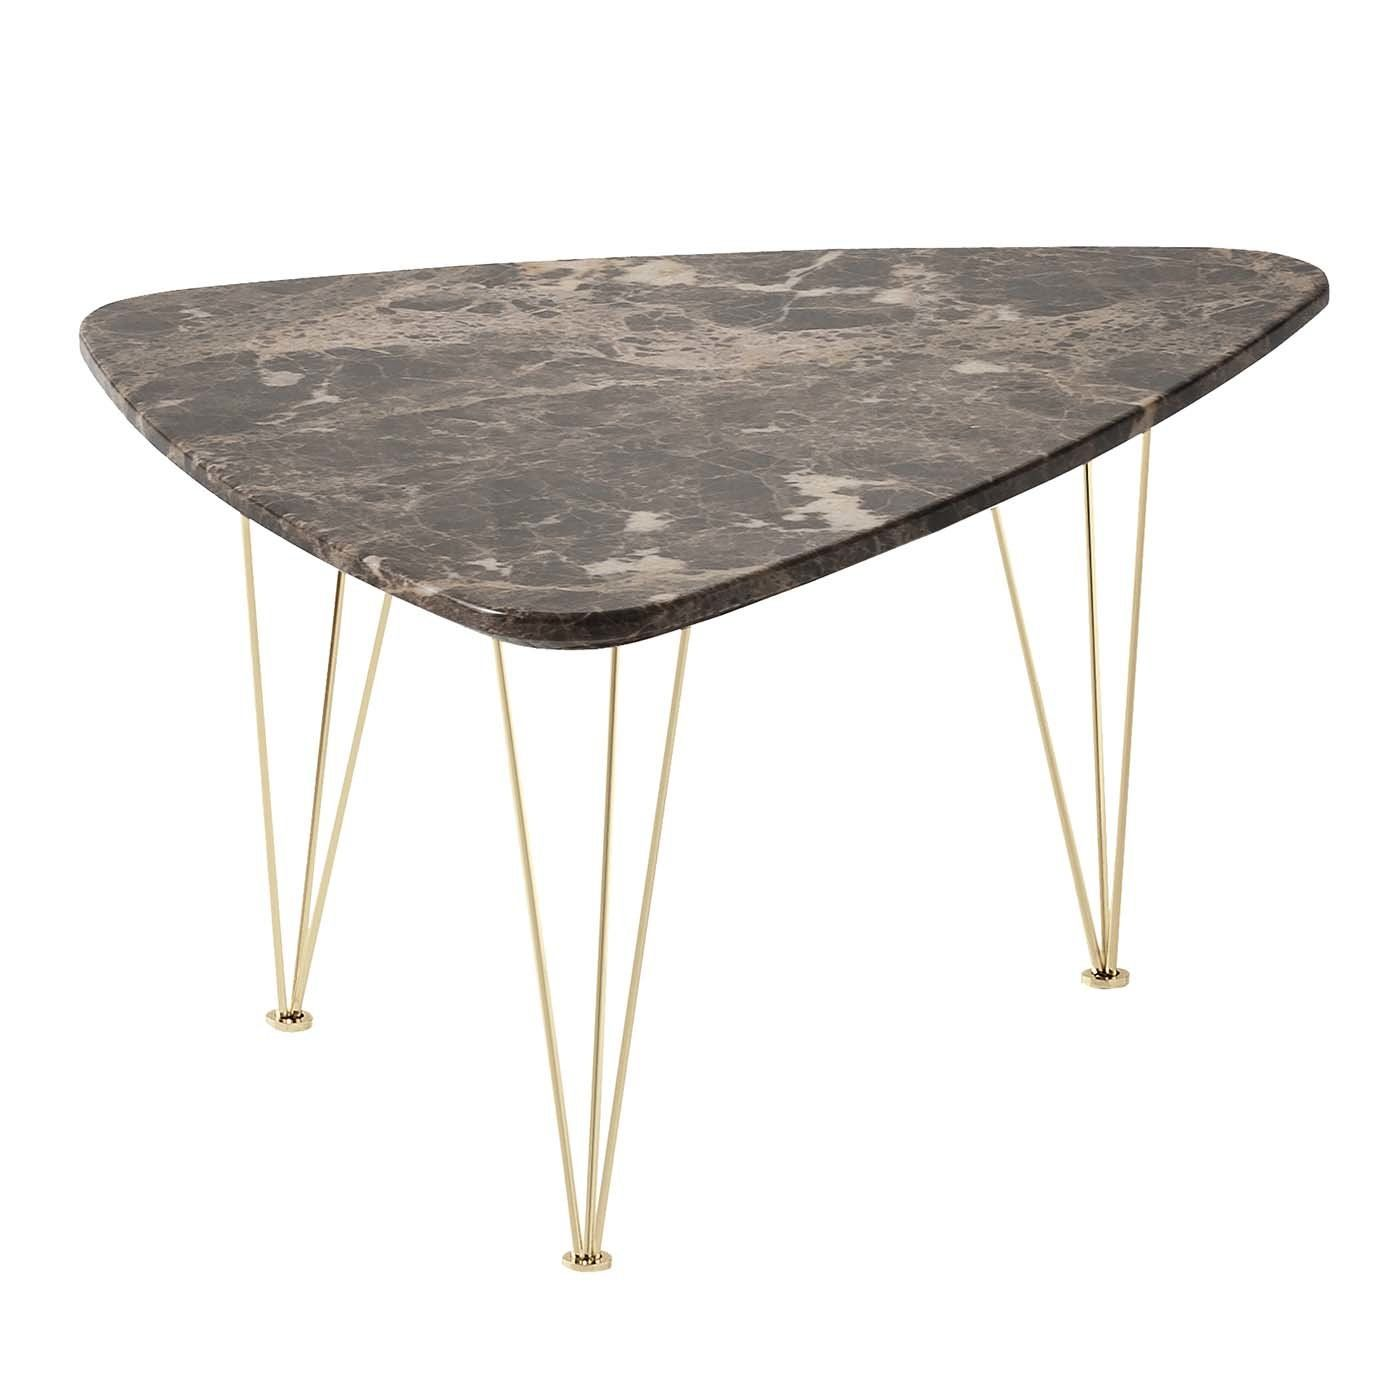 Flamingo Triangular Coffee Table With Gold Legs In 2020 Gold Legs Coffee Table Side Table [ 1400 x 1400 Pixel ]